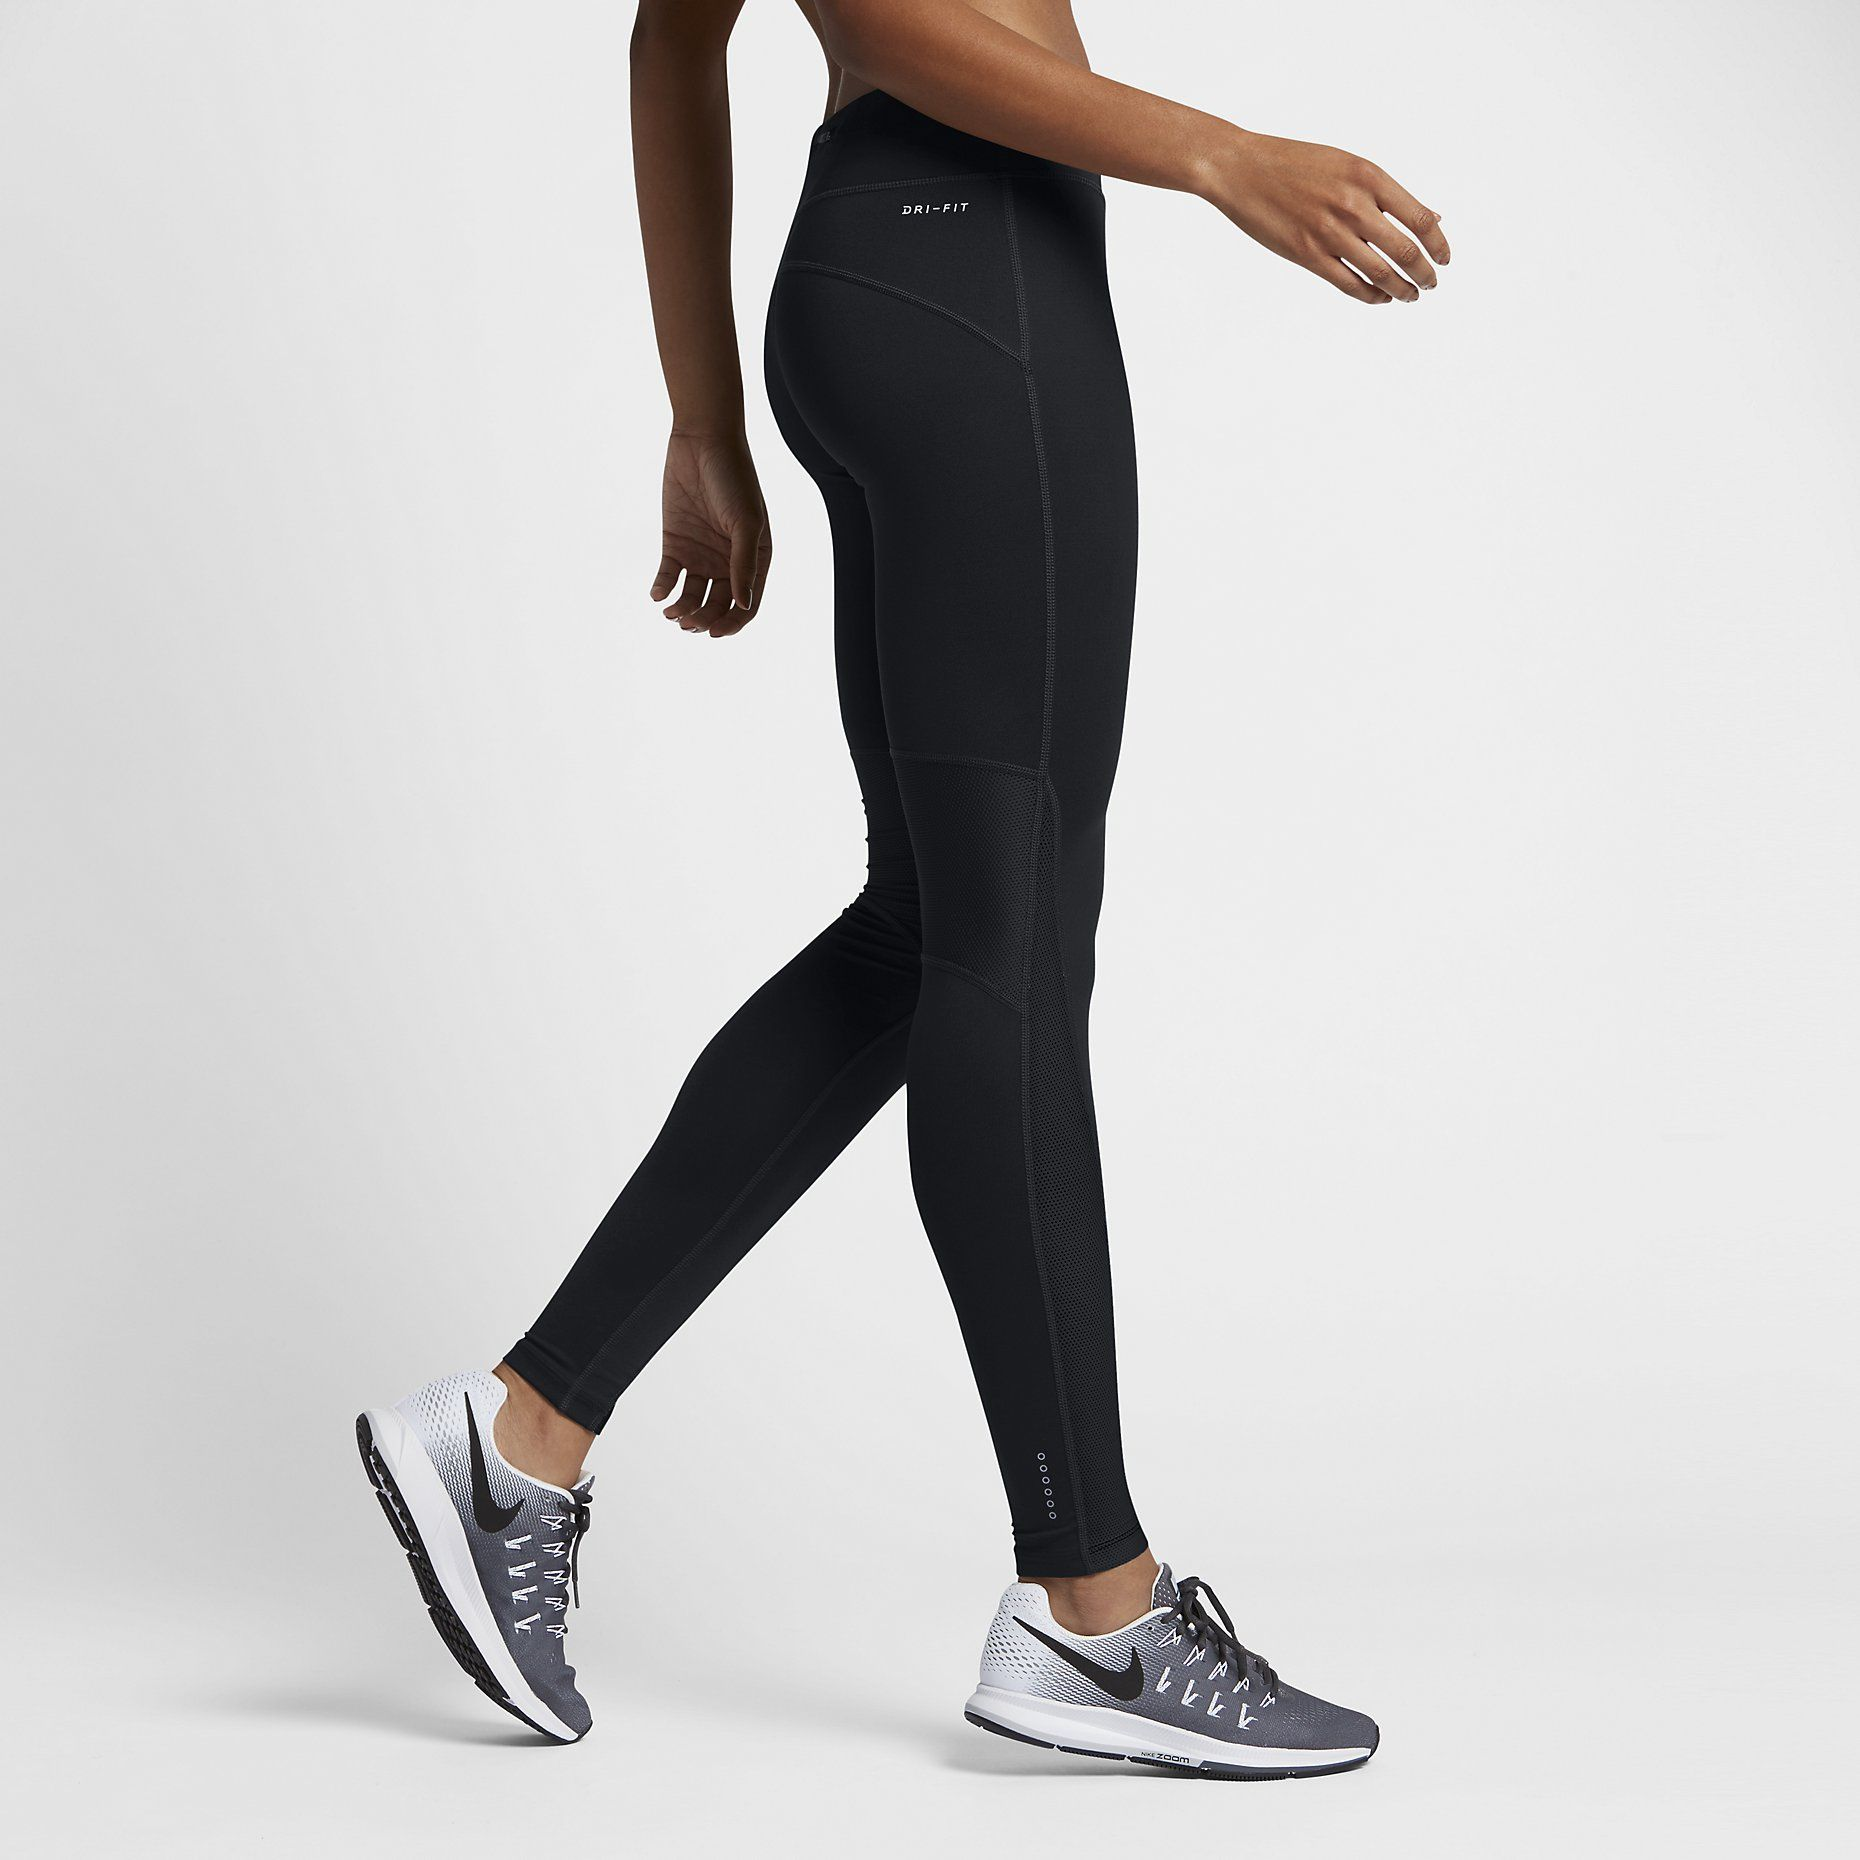 pretty nice 51593 0605e Products engineered for peak performance in competition, training, and life.  Shop the latest innovation at Nike.com.